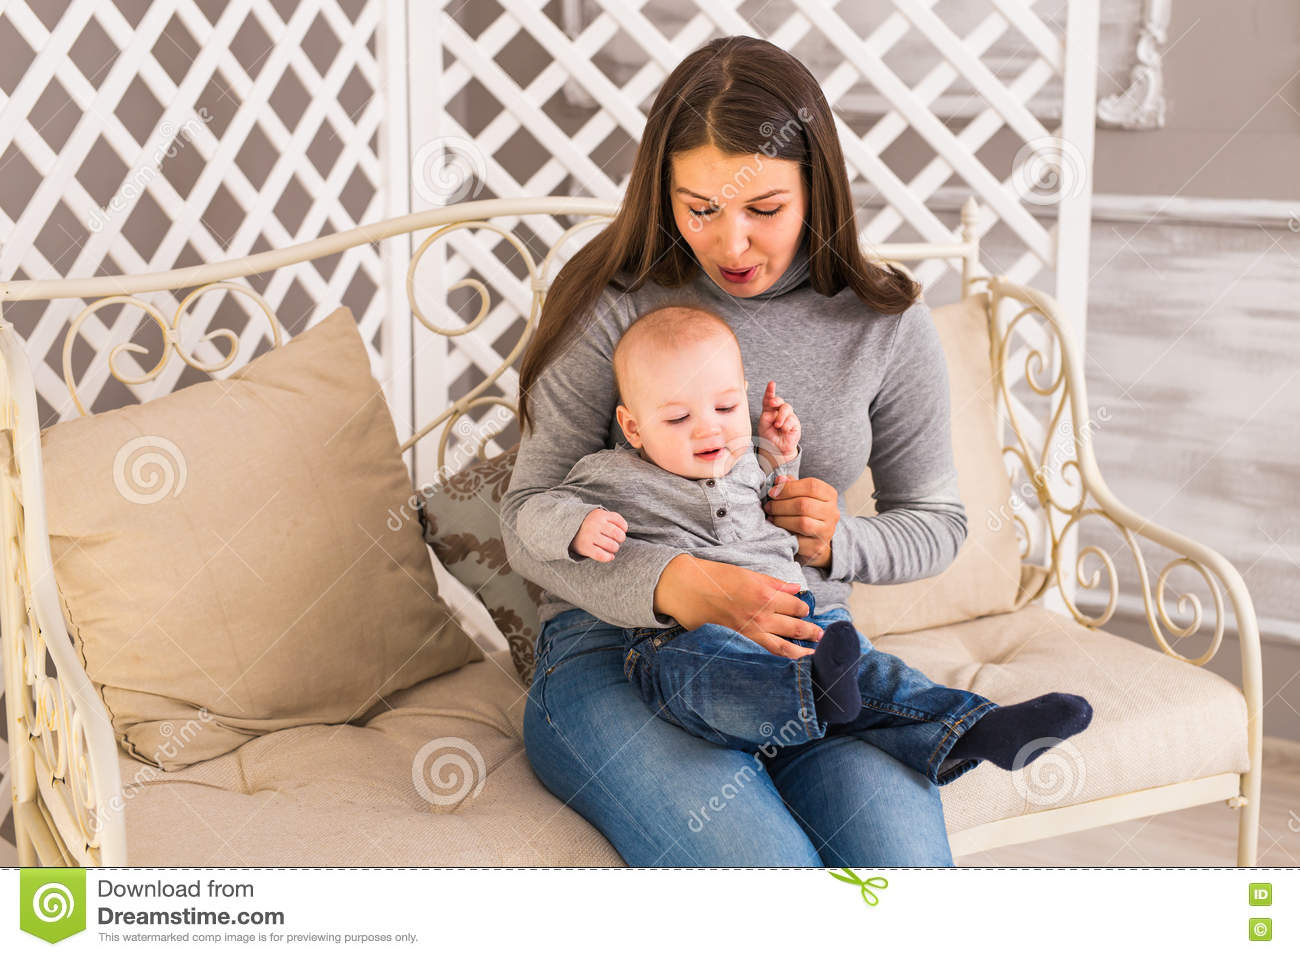 Happy family laughing faces, mother holding adorable child baby boy, smiling and hugging, healthy kid joyful mom